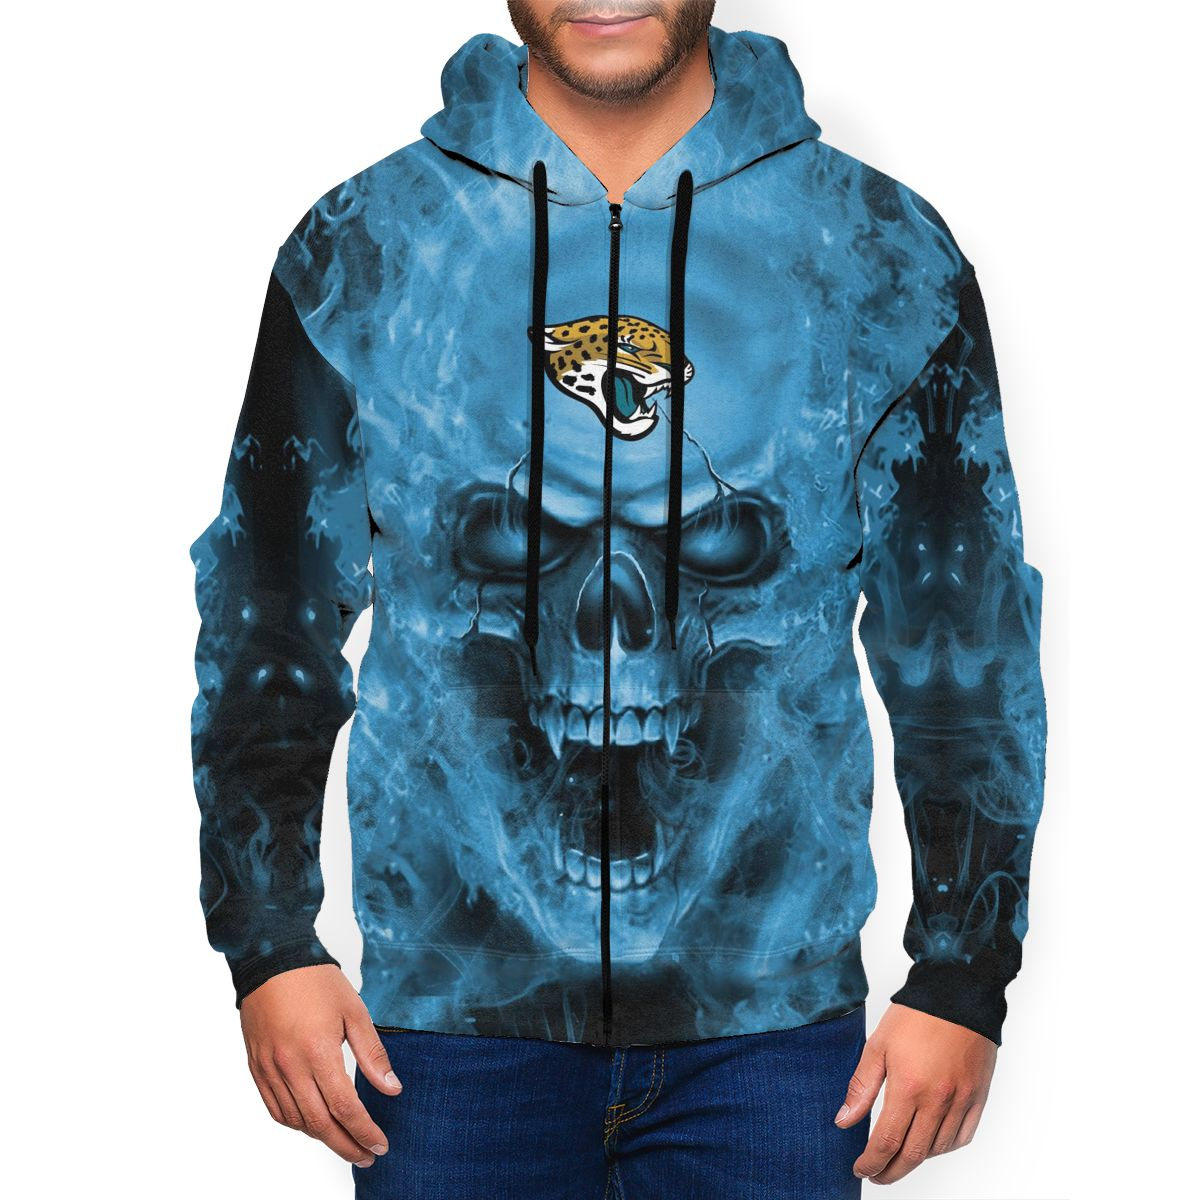 3D Skull Jaguars Men's Zip Hooded Sweatshirt